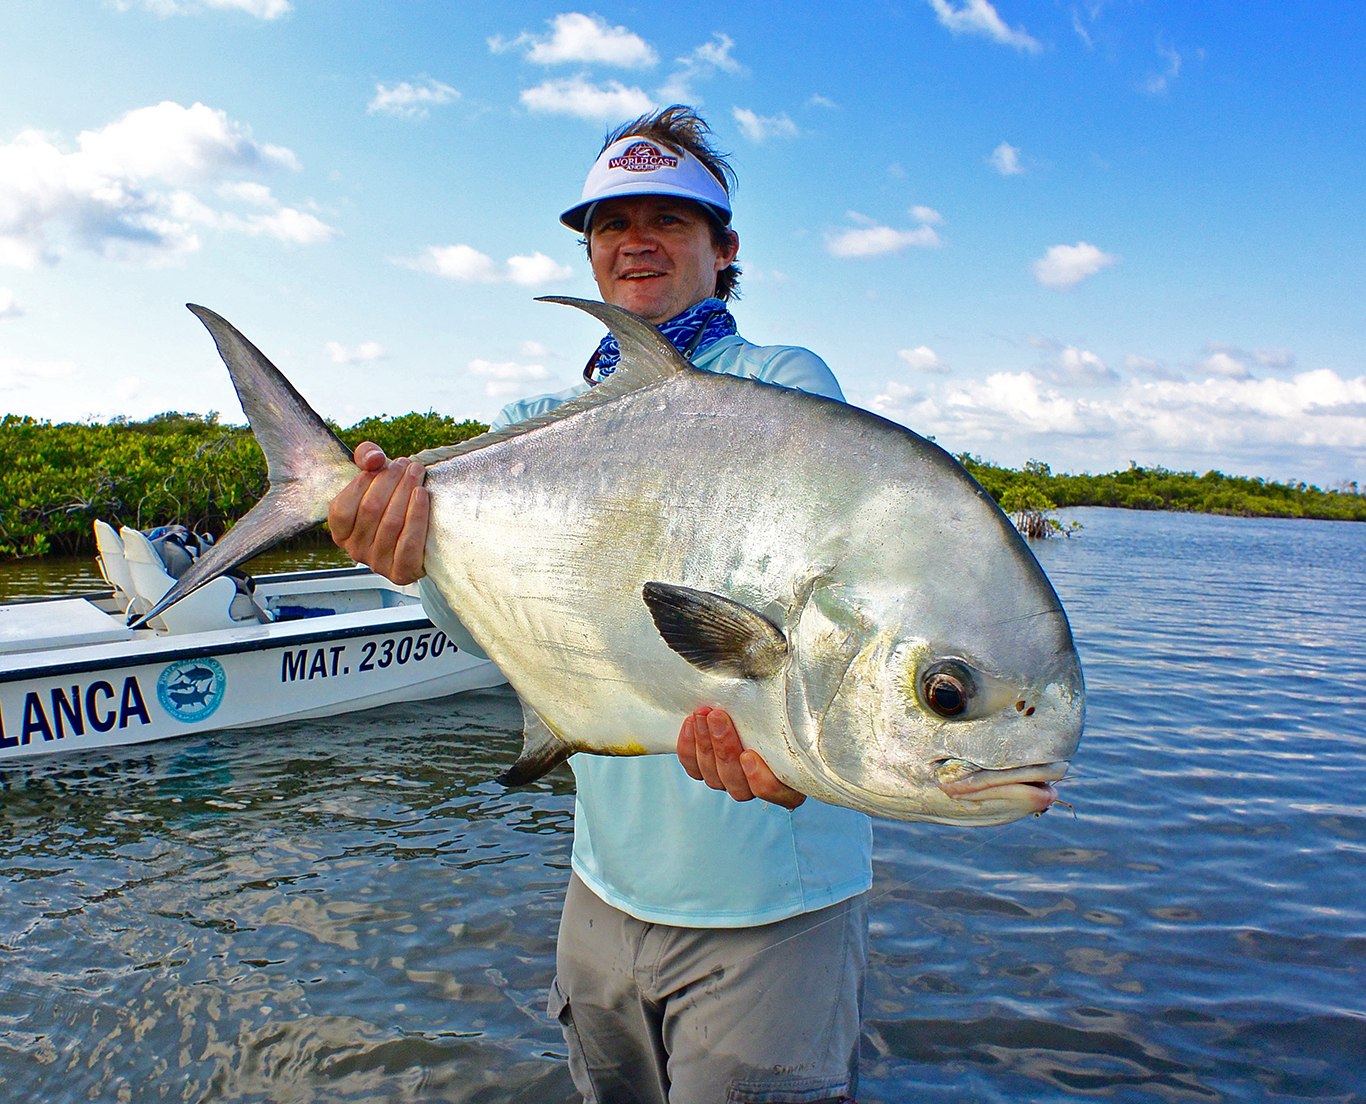 Playa blanca permit fly fishing trip report worldcast for Permit fly fishing